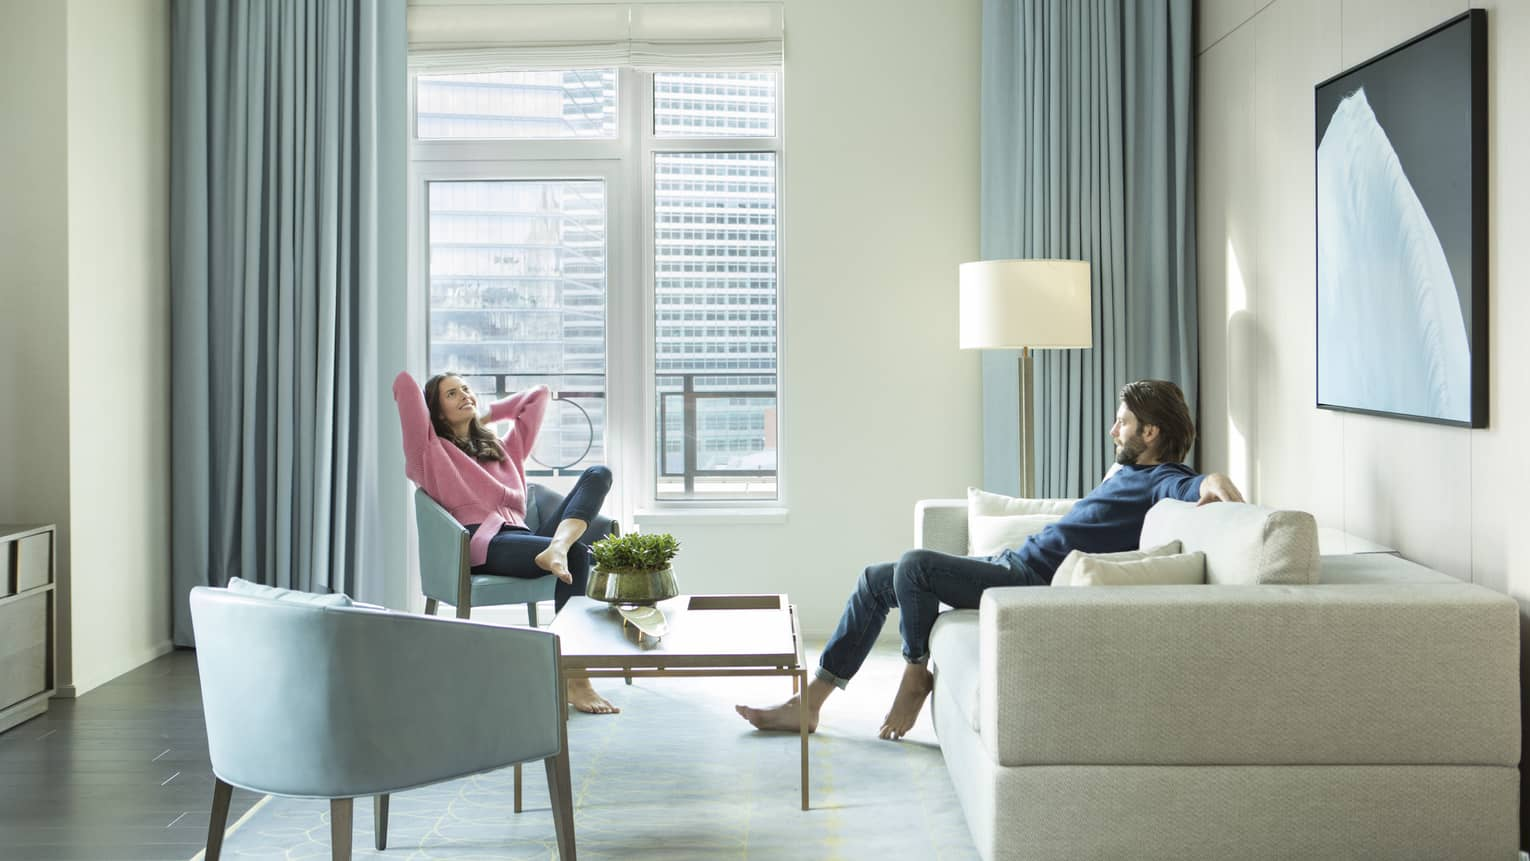 Man and woman relax in guest suite